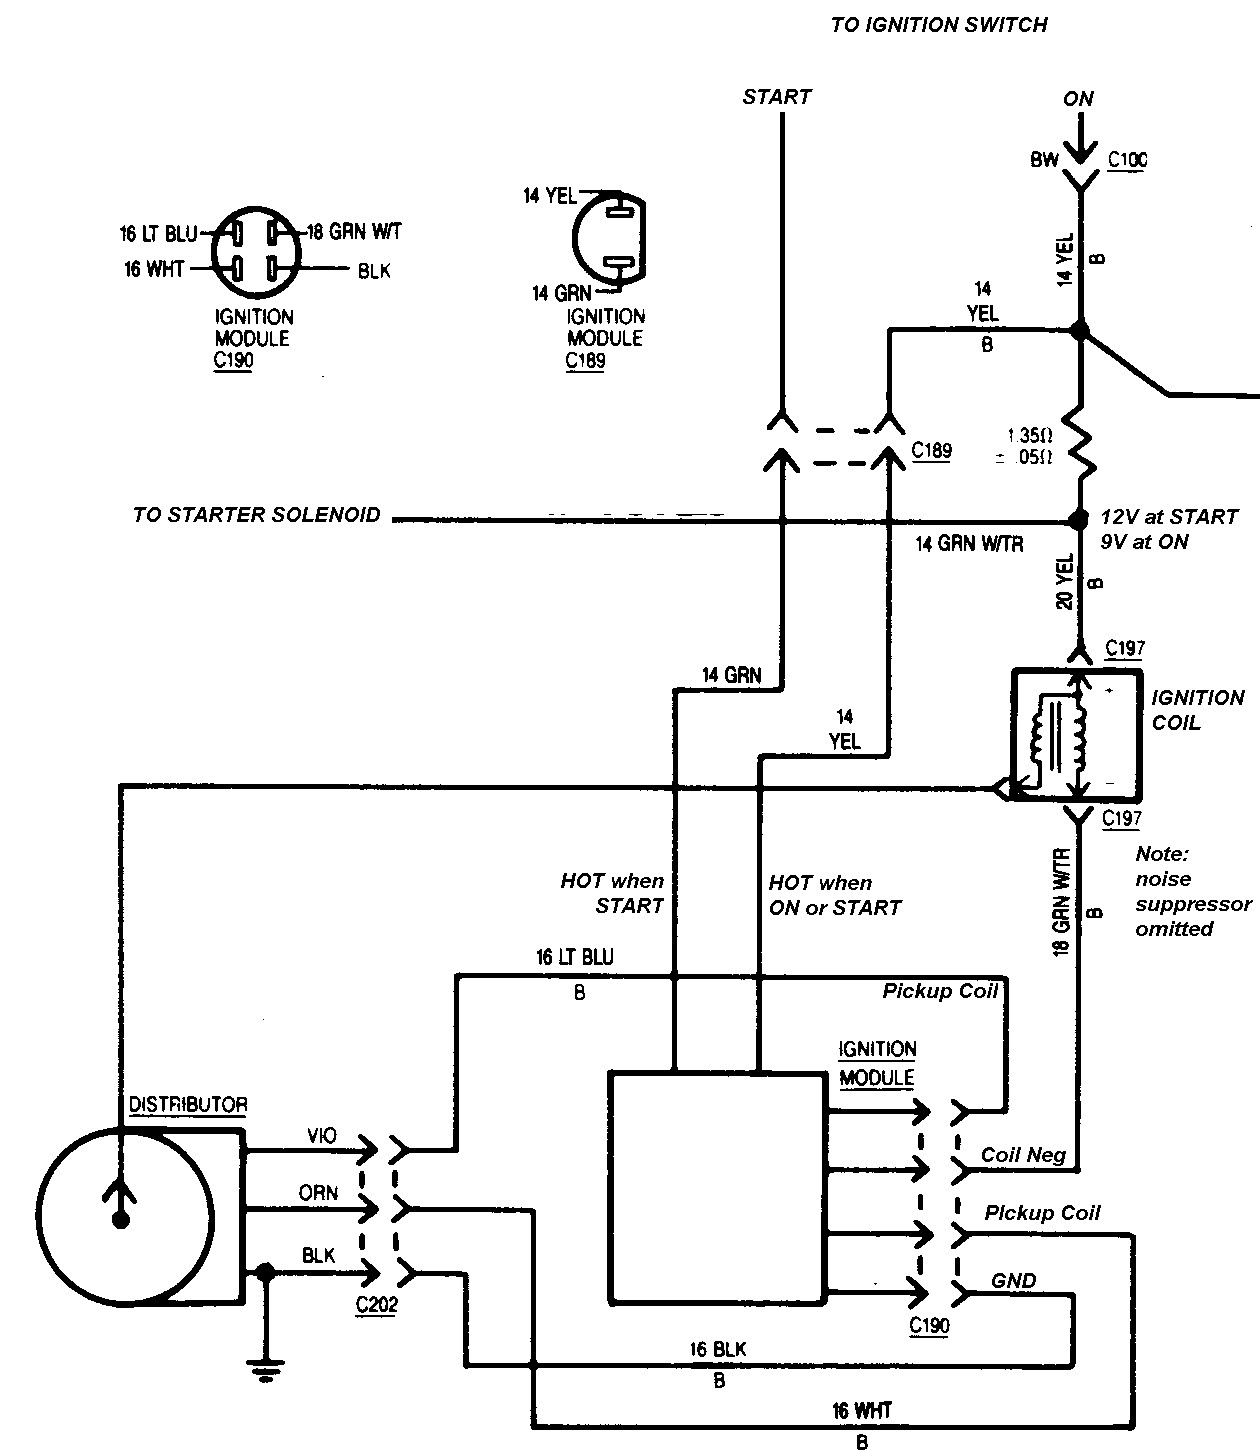 Distributor Cap Wiring Diagram 1990 Ford F150 5.0 Lt